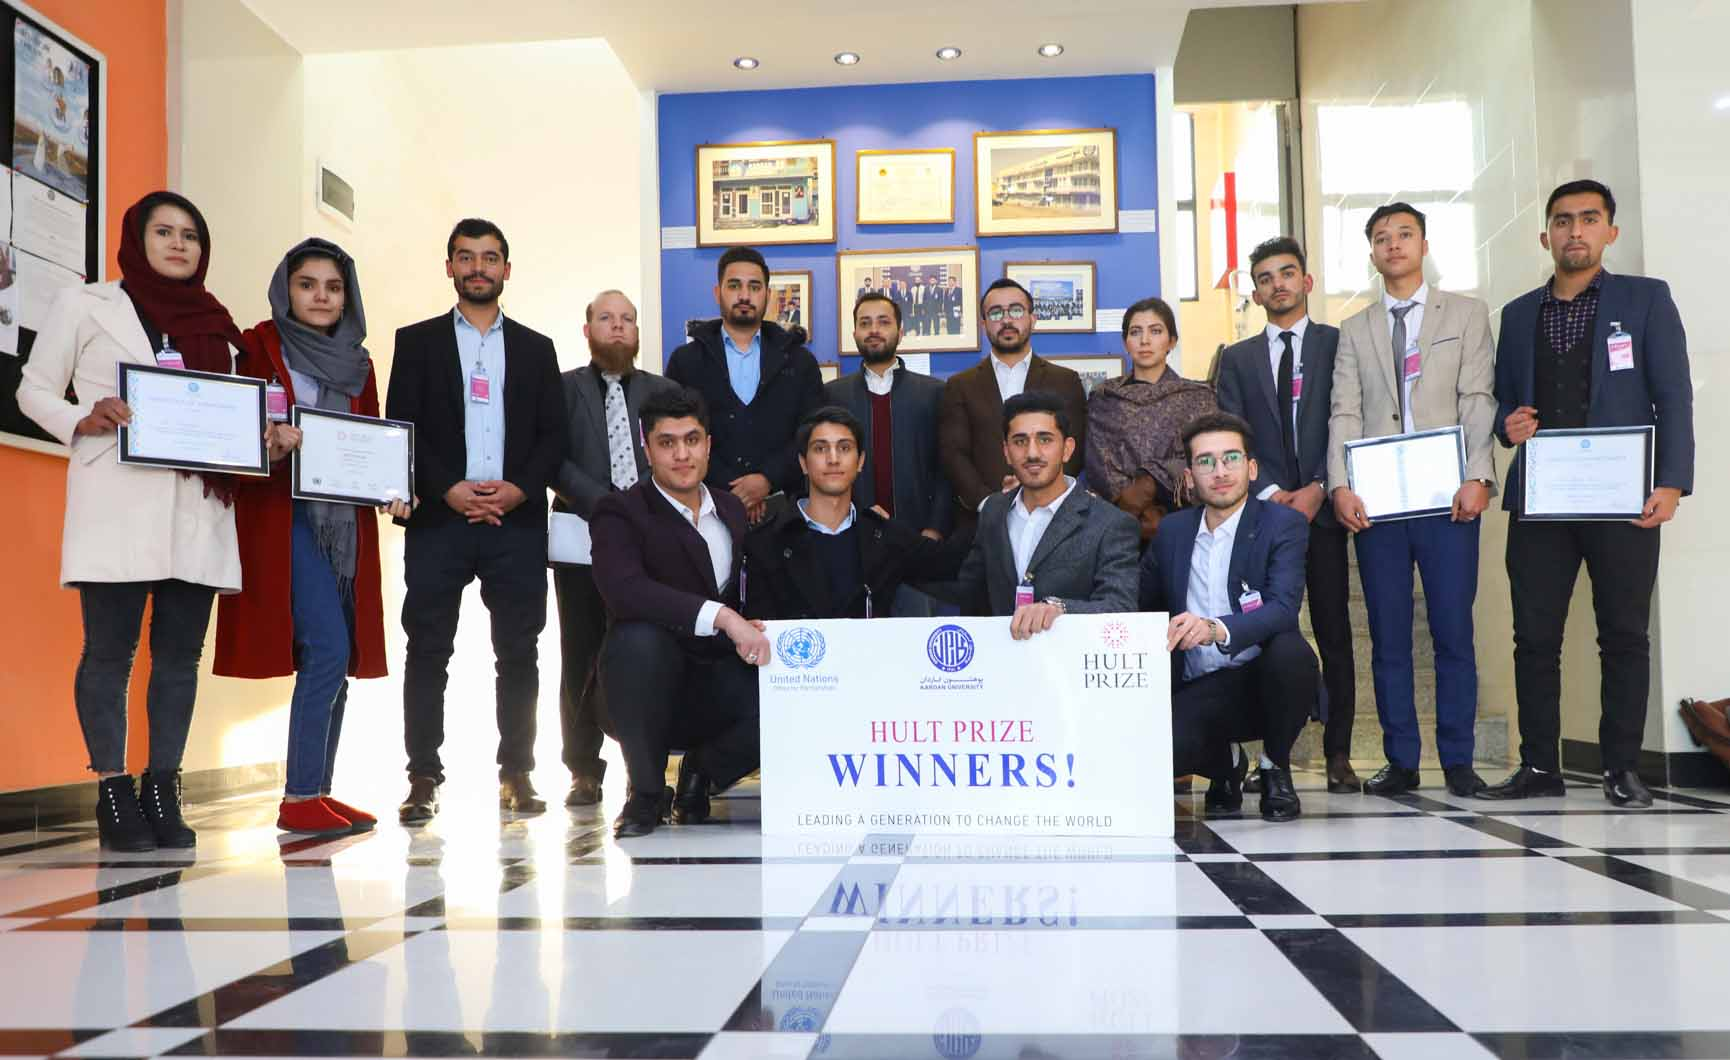 Kardan University Hult Prize Winning Team Advances to Regional Summit of 11th Annual Hult Prize in response to the United Nations Empowering the Earth: Bold Business for a Better Planet